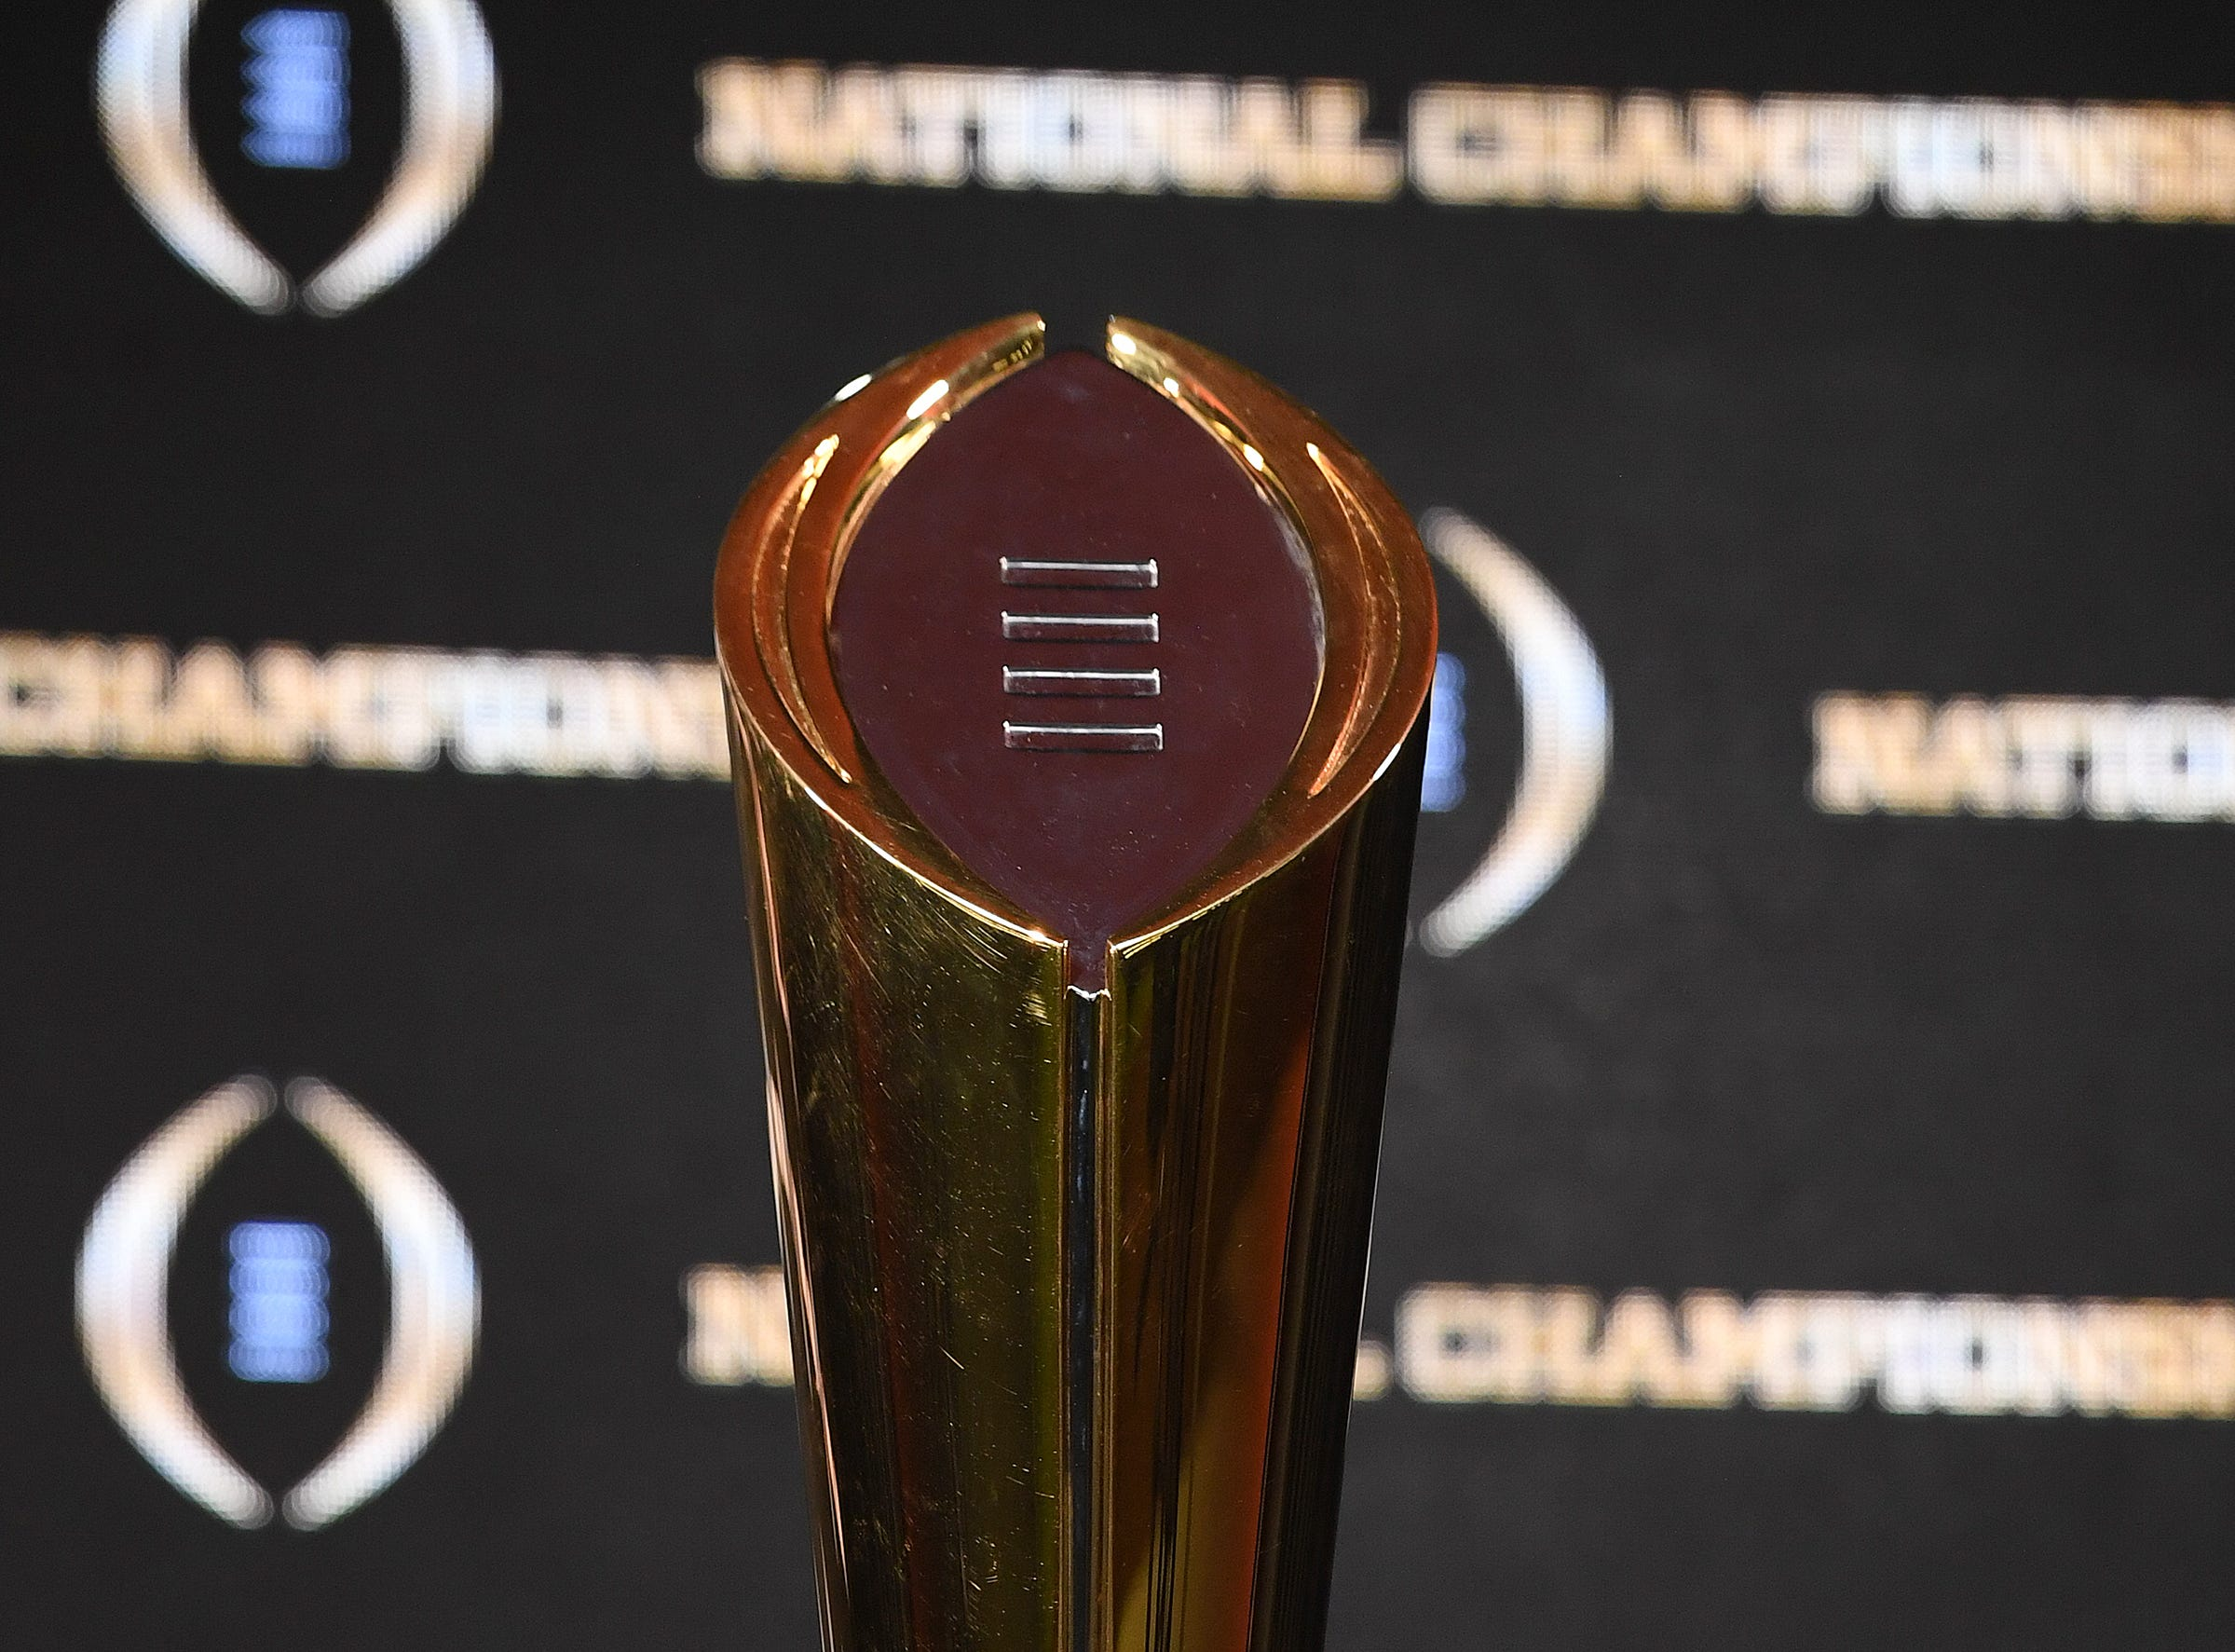 Clemson's College Football National Championship trophy during the Tigers press conference in San Jose, CA Tuesday, January 8, 2019.